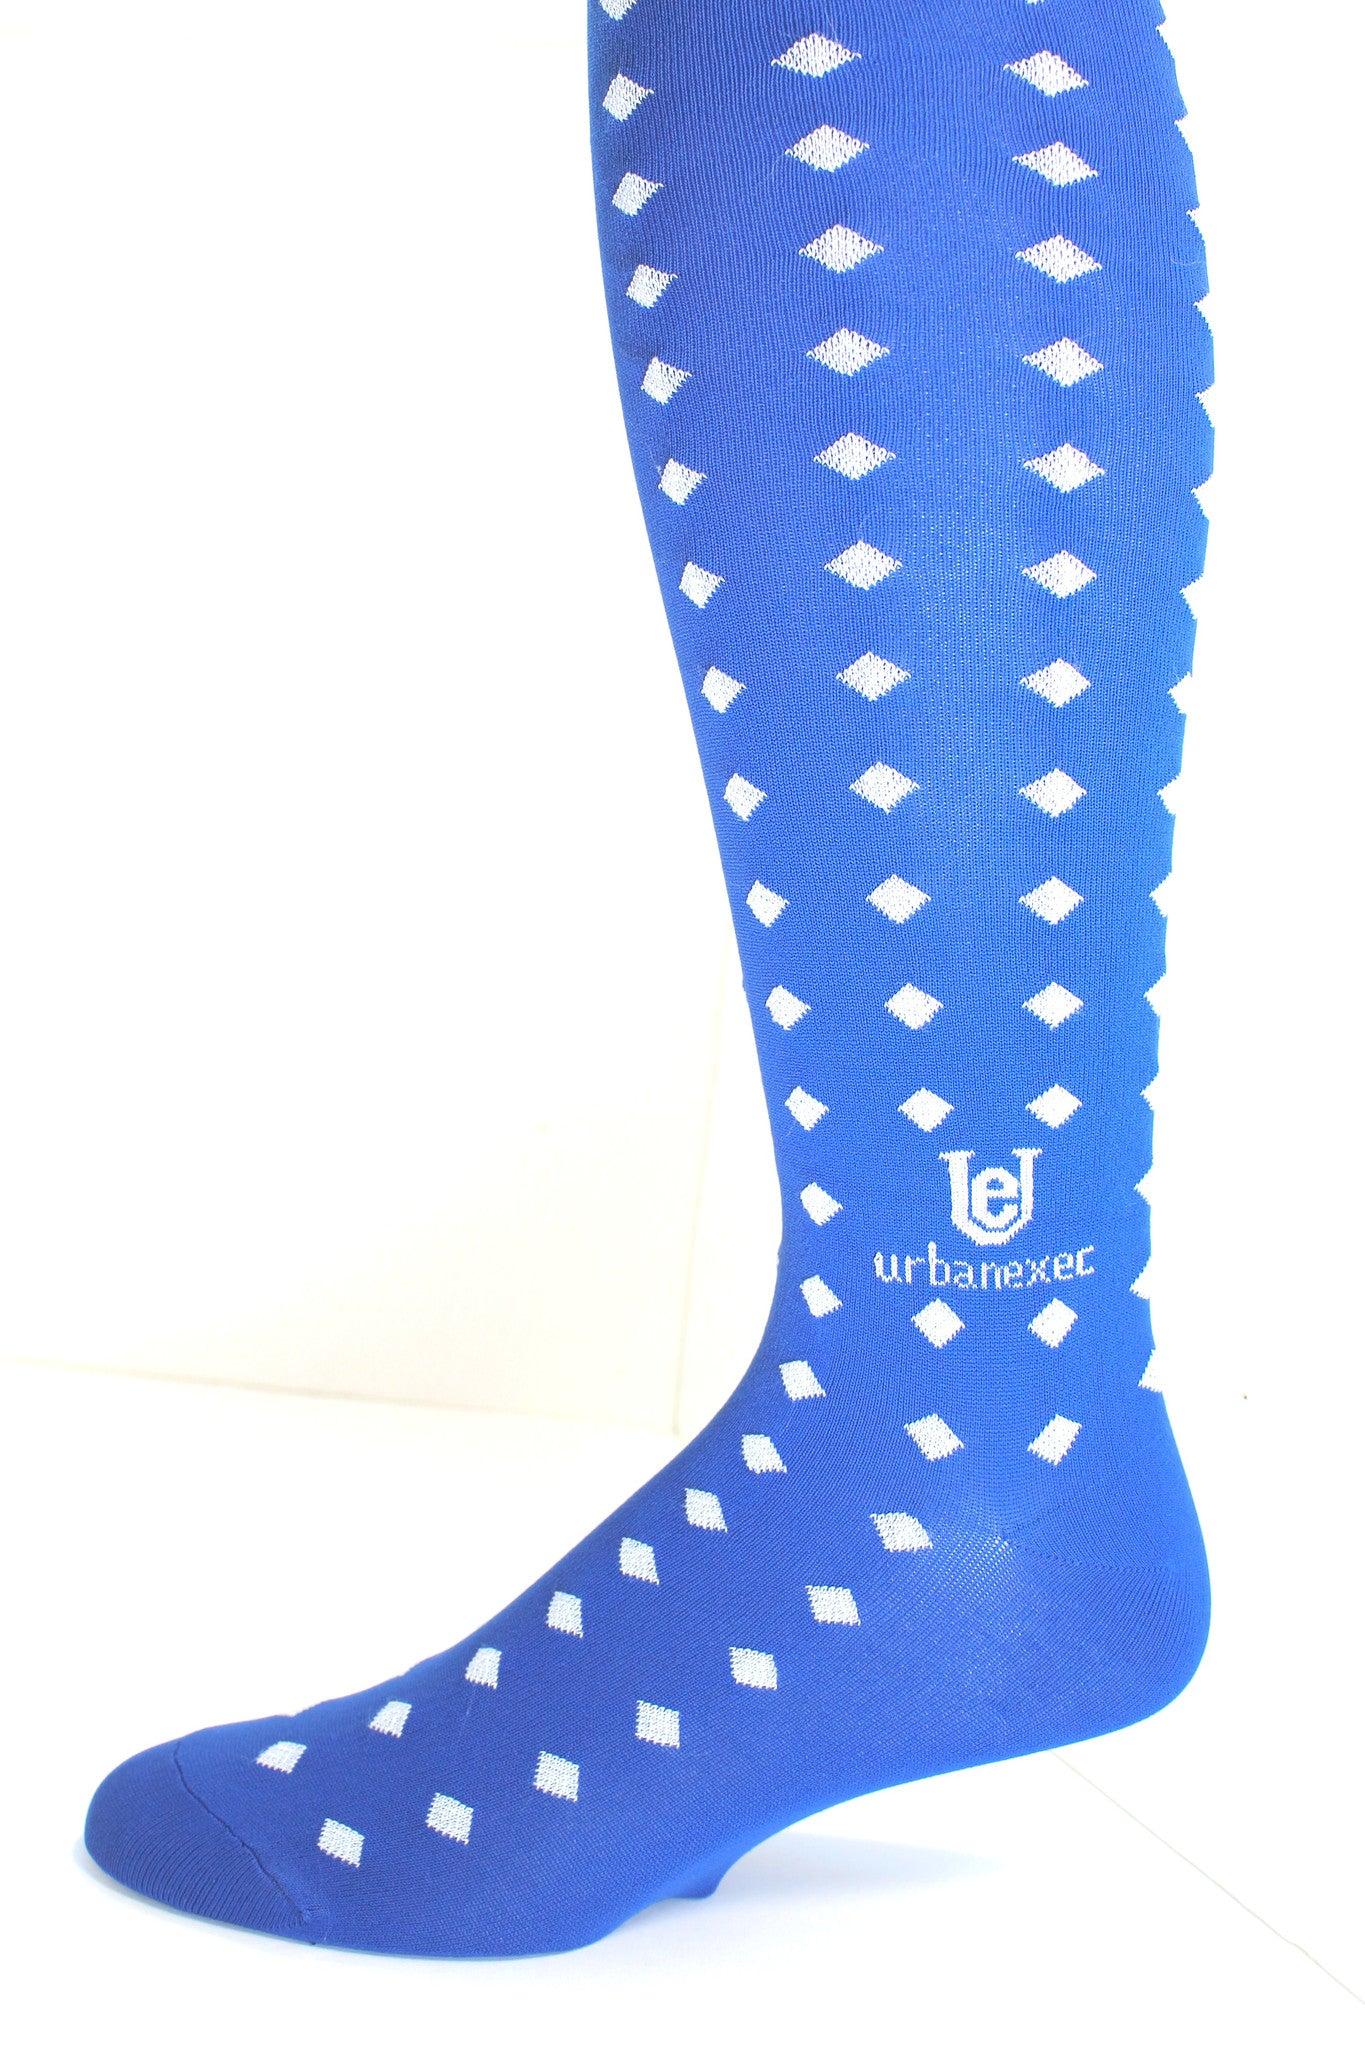 Men's  Socks Over-the-Calf Game Day Blue and White Diamond